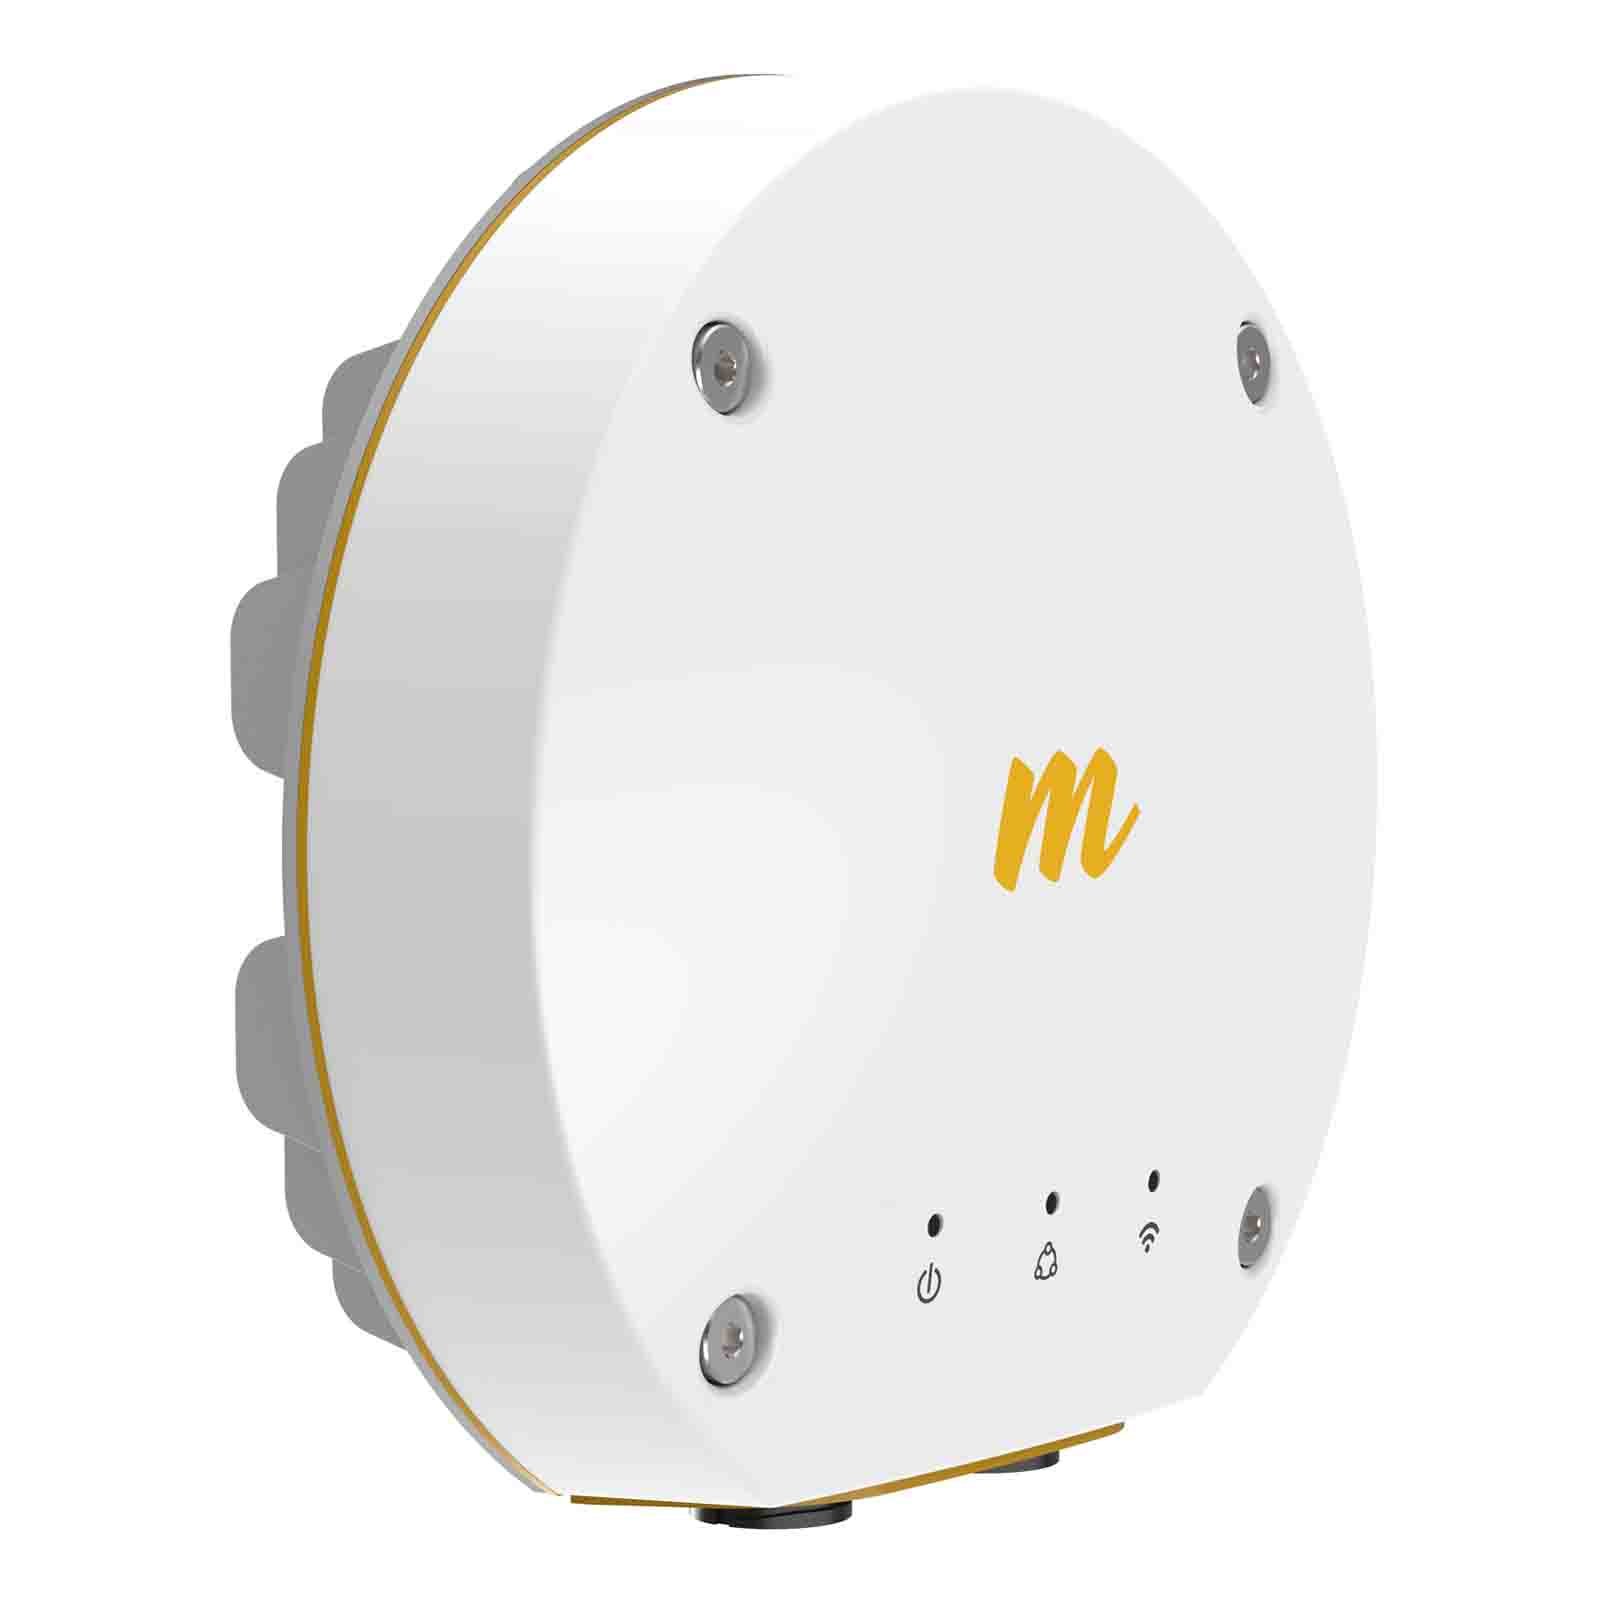 Mimosa Backhaul radio B11 10-11,7 GHz :: wisp.pl